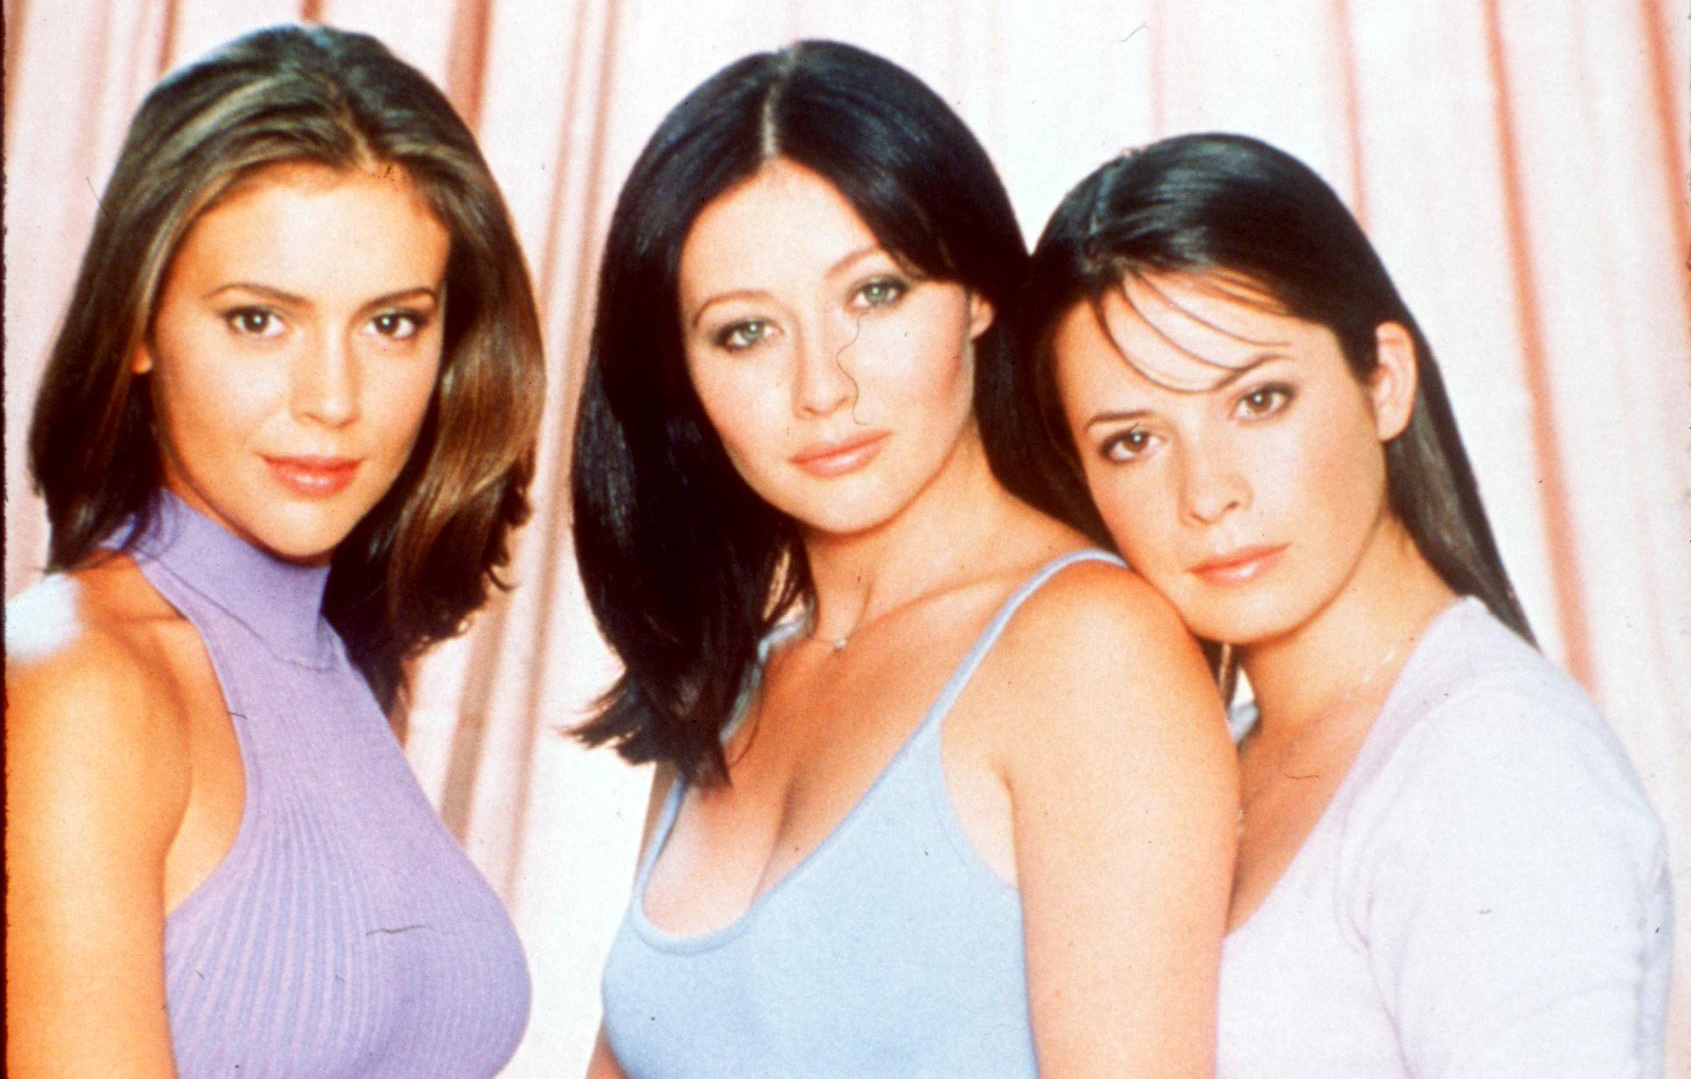 Alyssa Milano Hot Scenes charmed creator spills show secrets in our decades-old interview